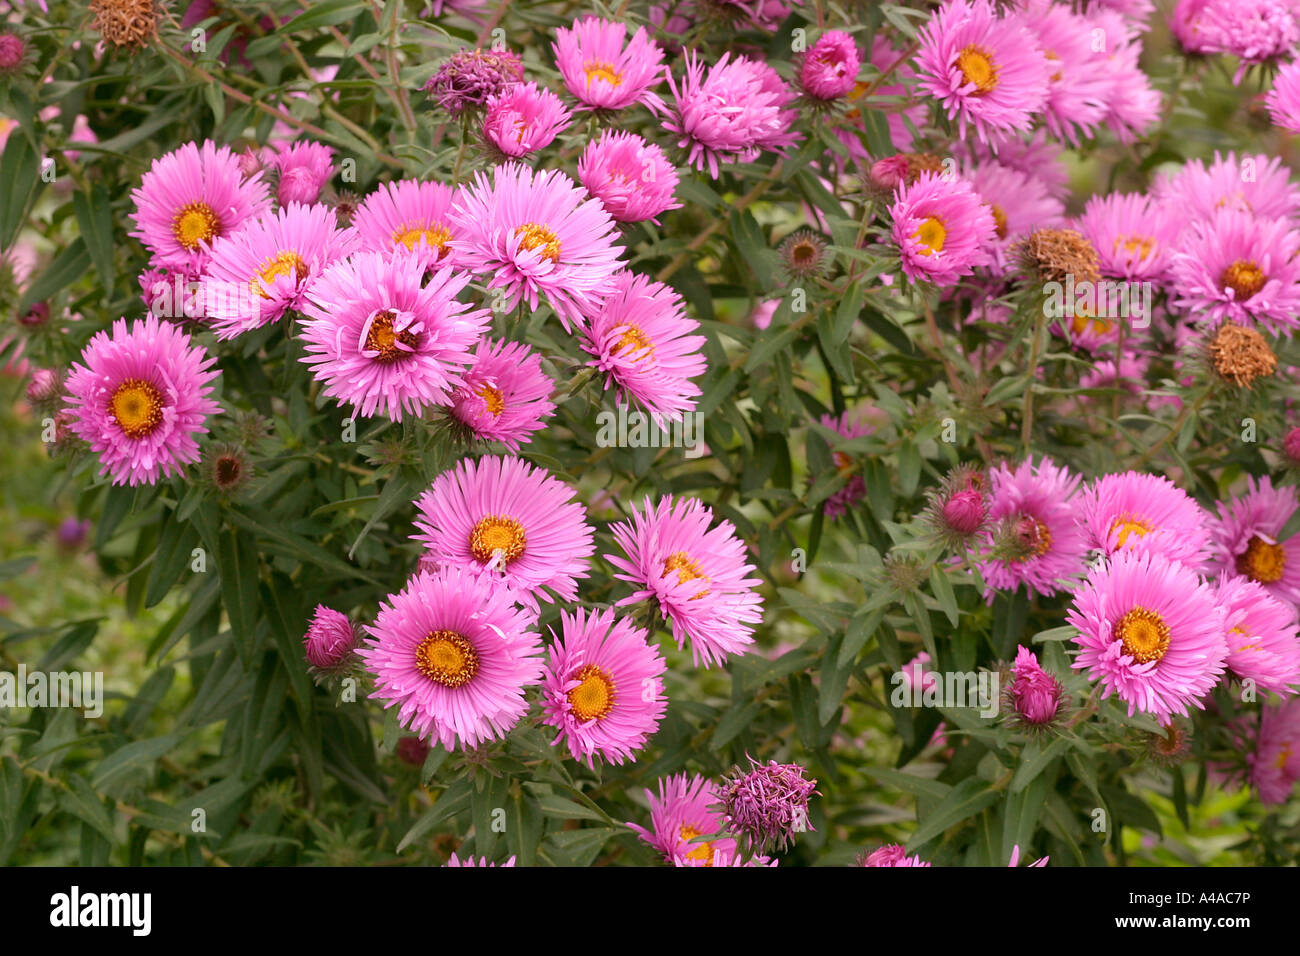 pink aster novae angliae stock photos  pink aster novae angliae, Beautiful flower